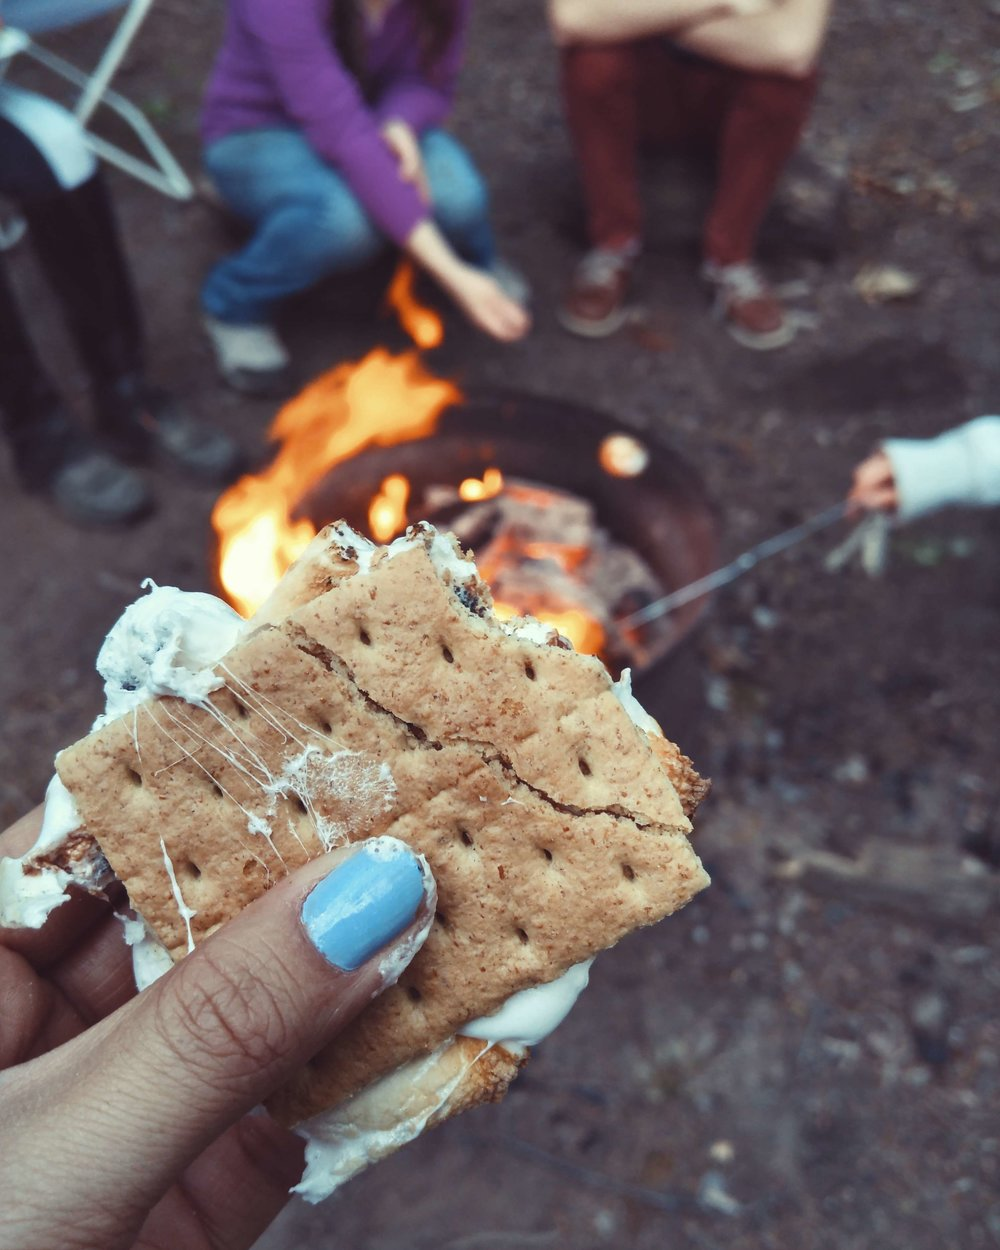 A tent that is easy to set up means you have more time to do the camping stuff you love, like making s'mores.   Photo by    Autumn Mott Rodeheaver    on    Unsplash